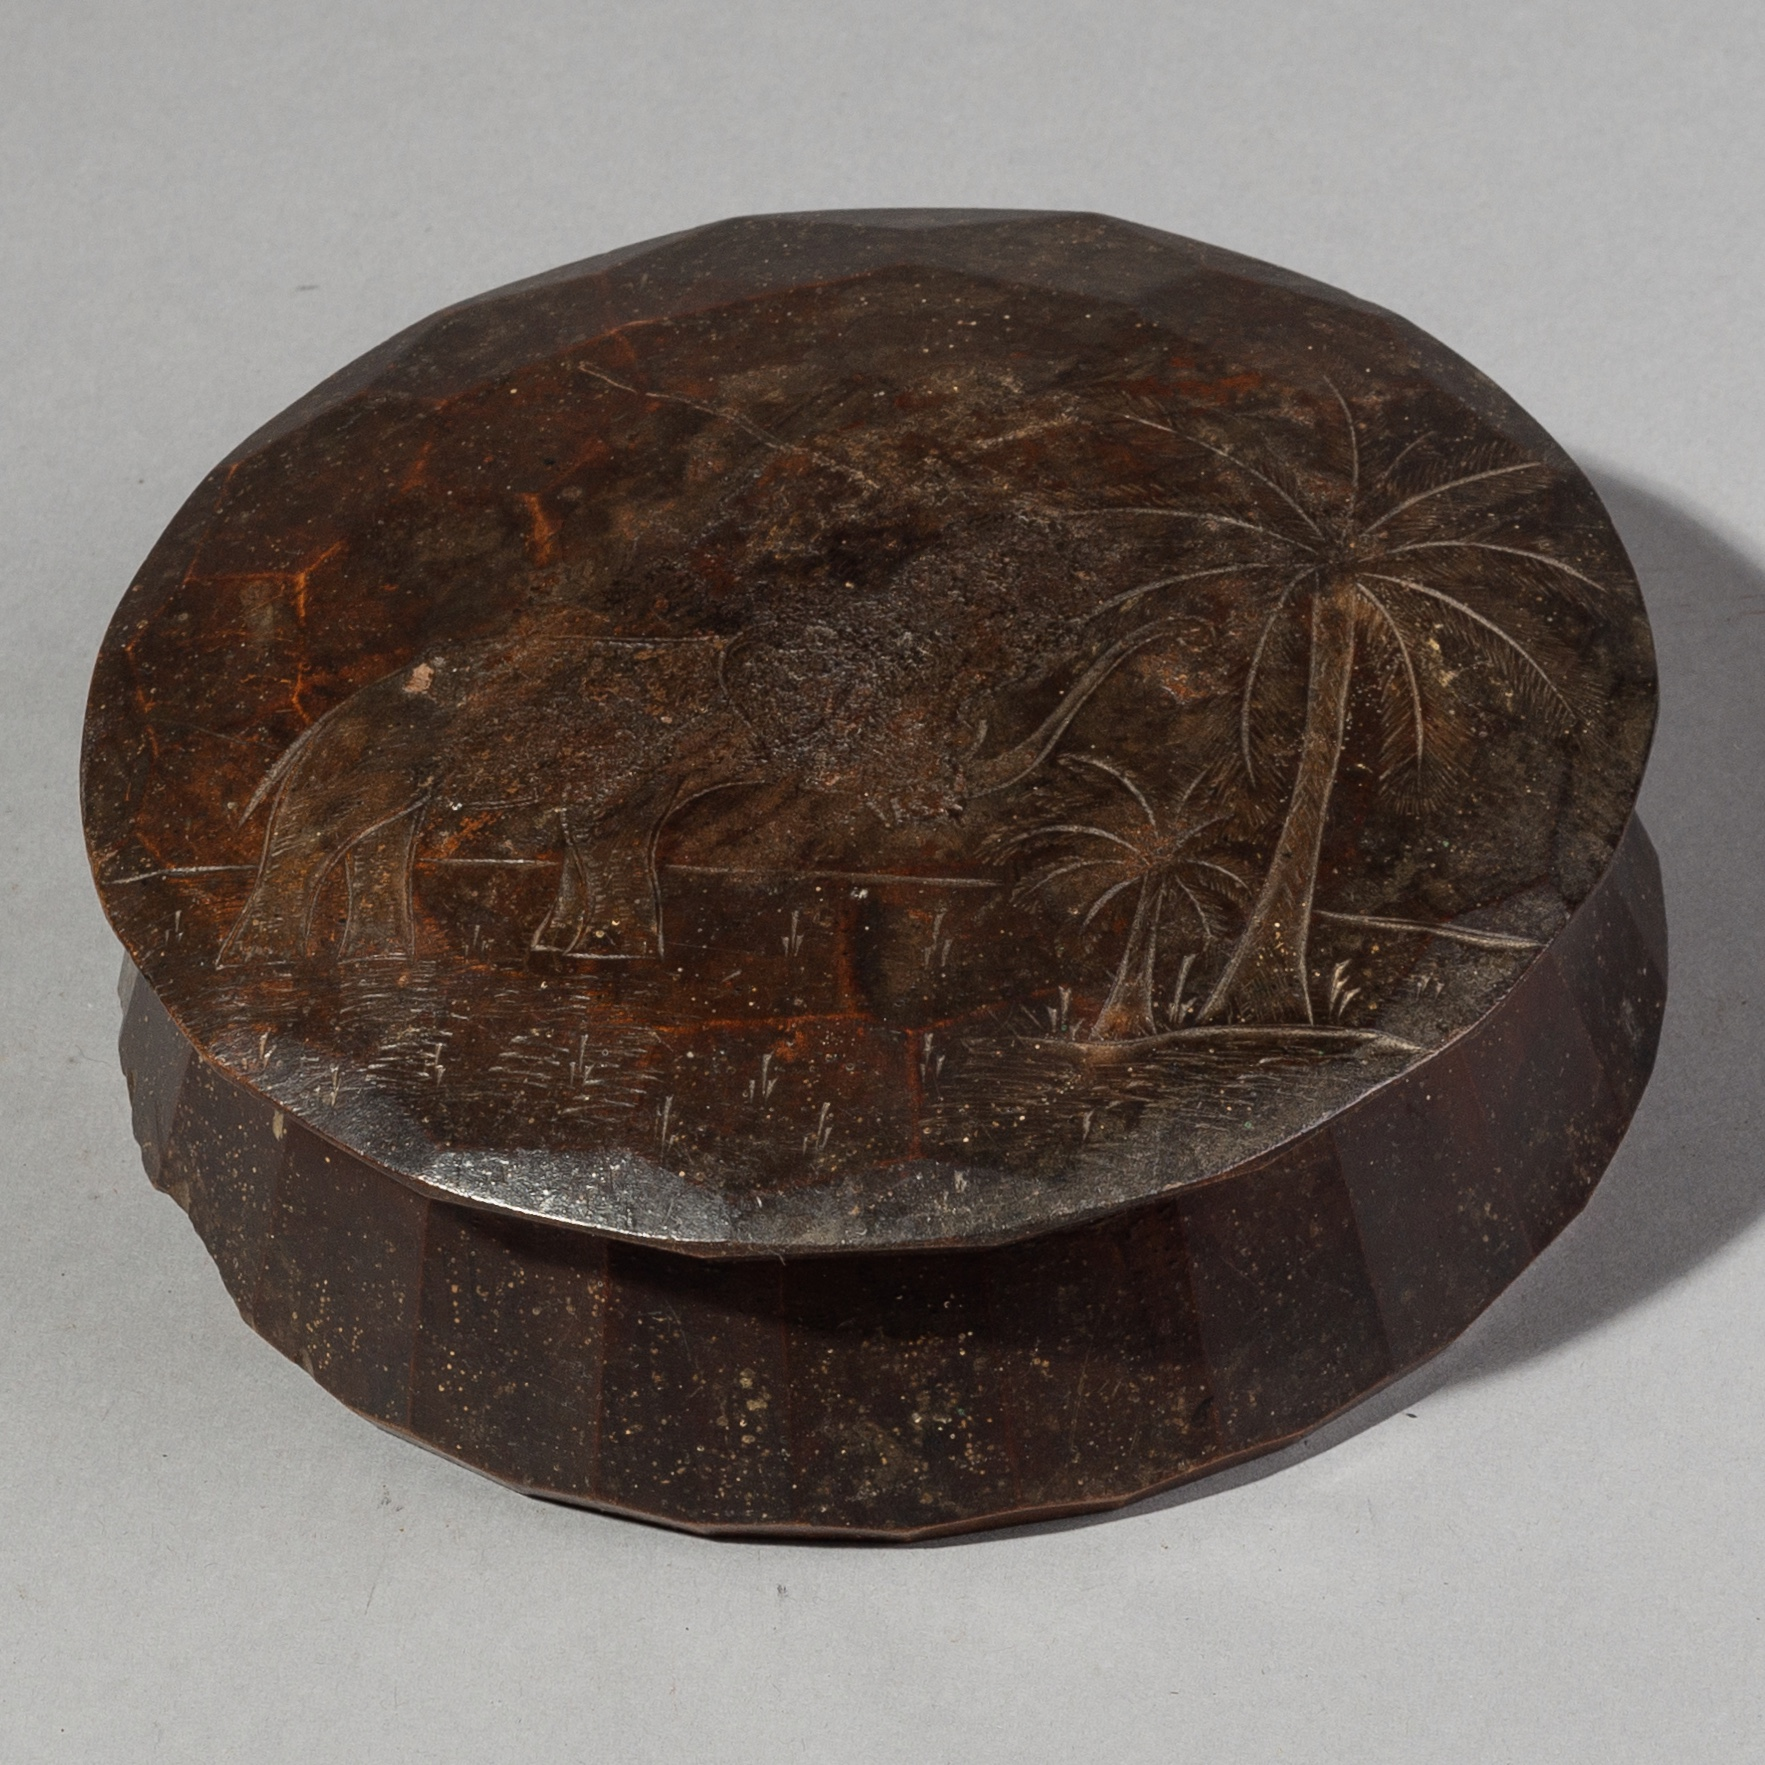 A LIDDED CONTAINER WITH TROPICAL ENGR AVINGS FROM DAN TRIBE  OF THE IVORY COAST (  No 1961 )